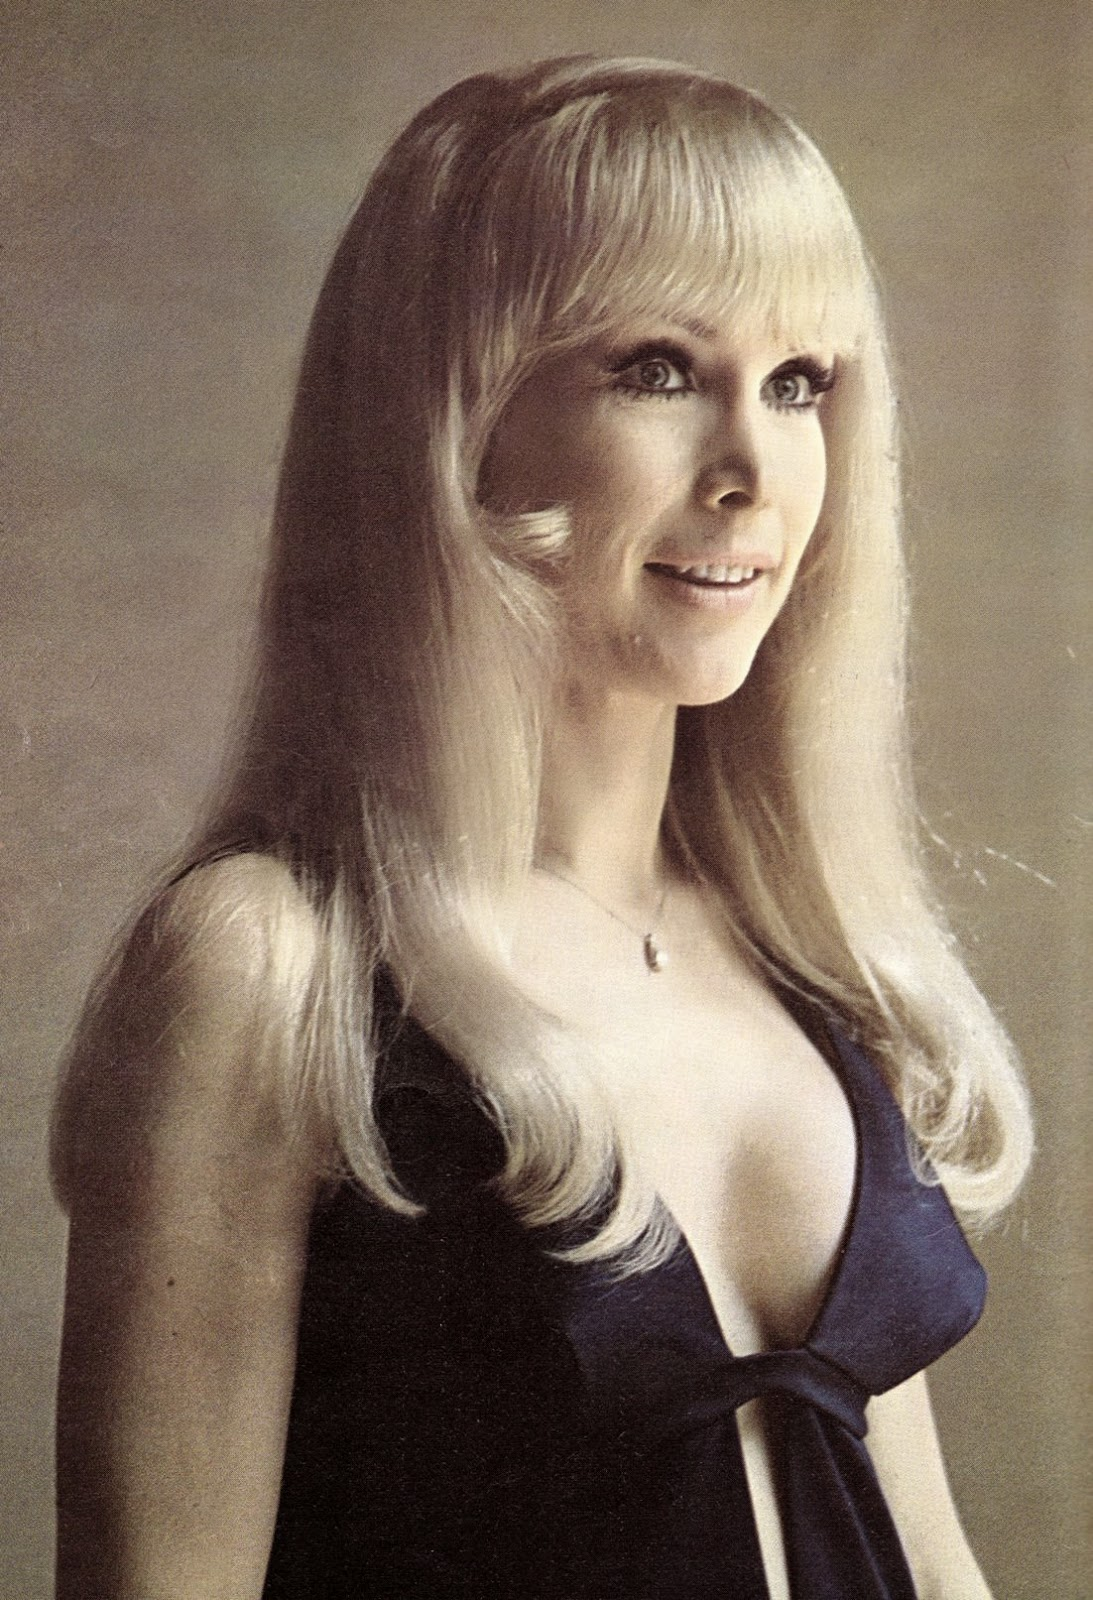 Frankly, you Barbara eden nude photos sorry, that